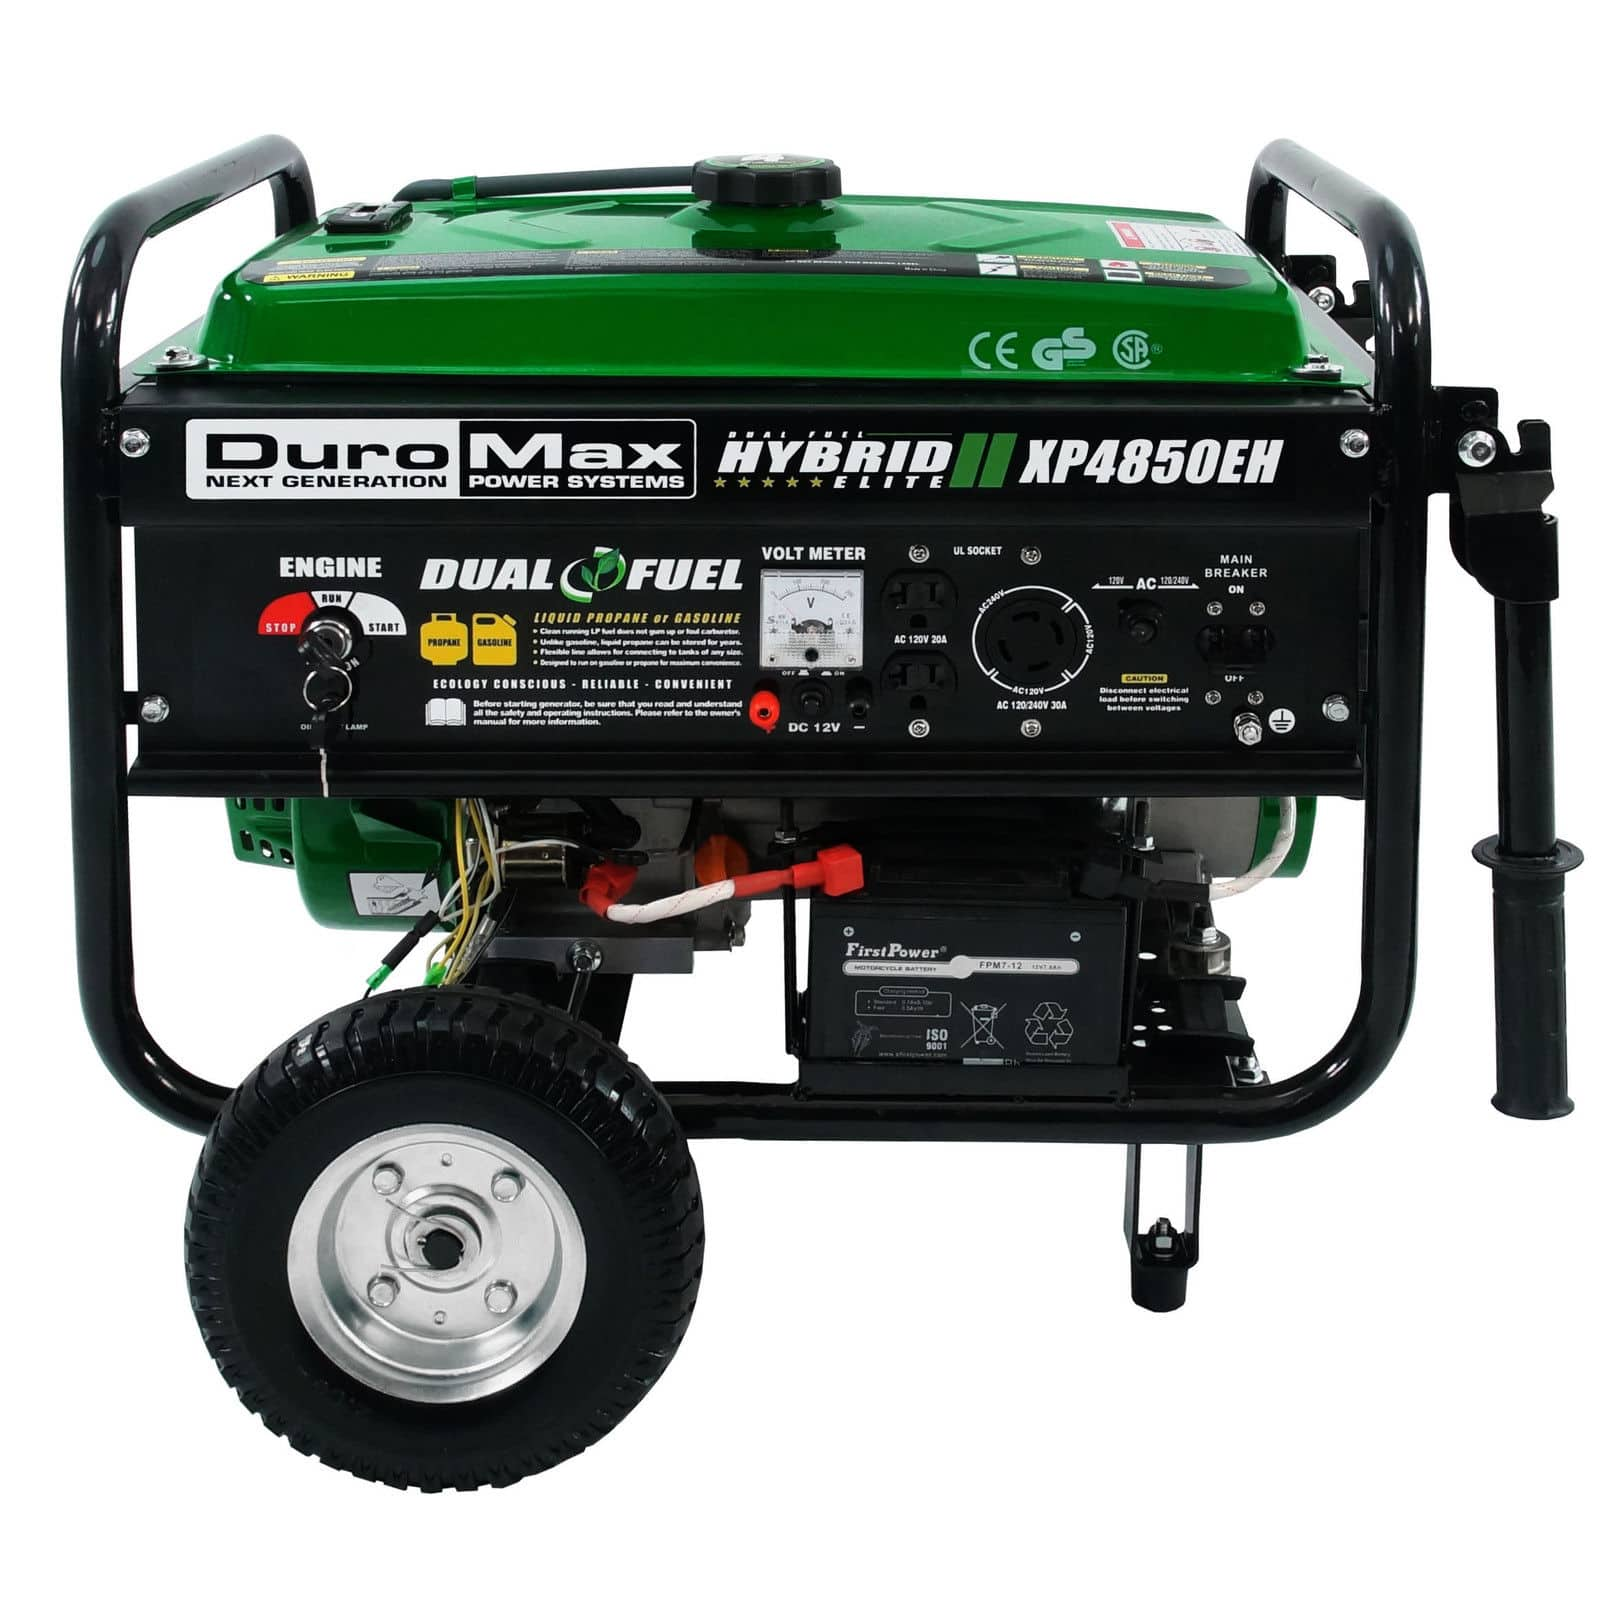 DuroMax XP4850EH Propane/Gas Generator w/ Electric Start  $300 + Free Shipping